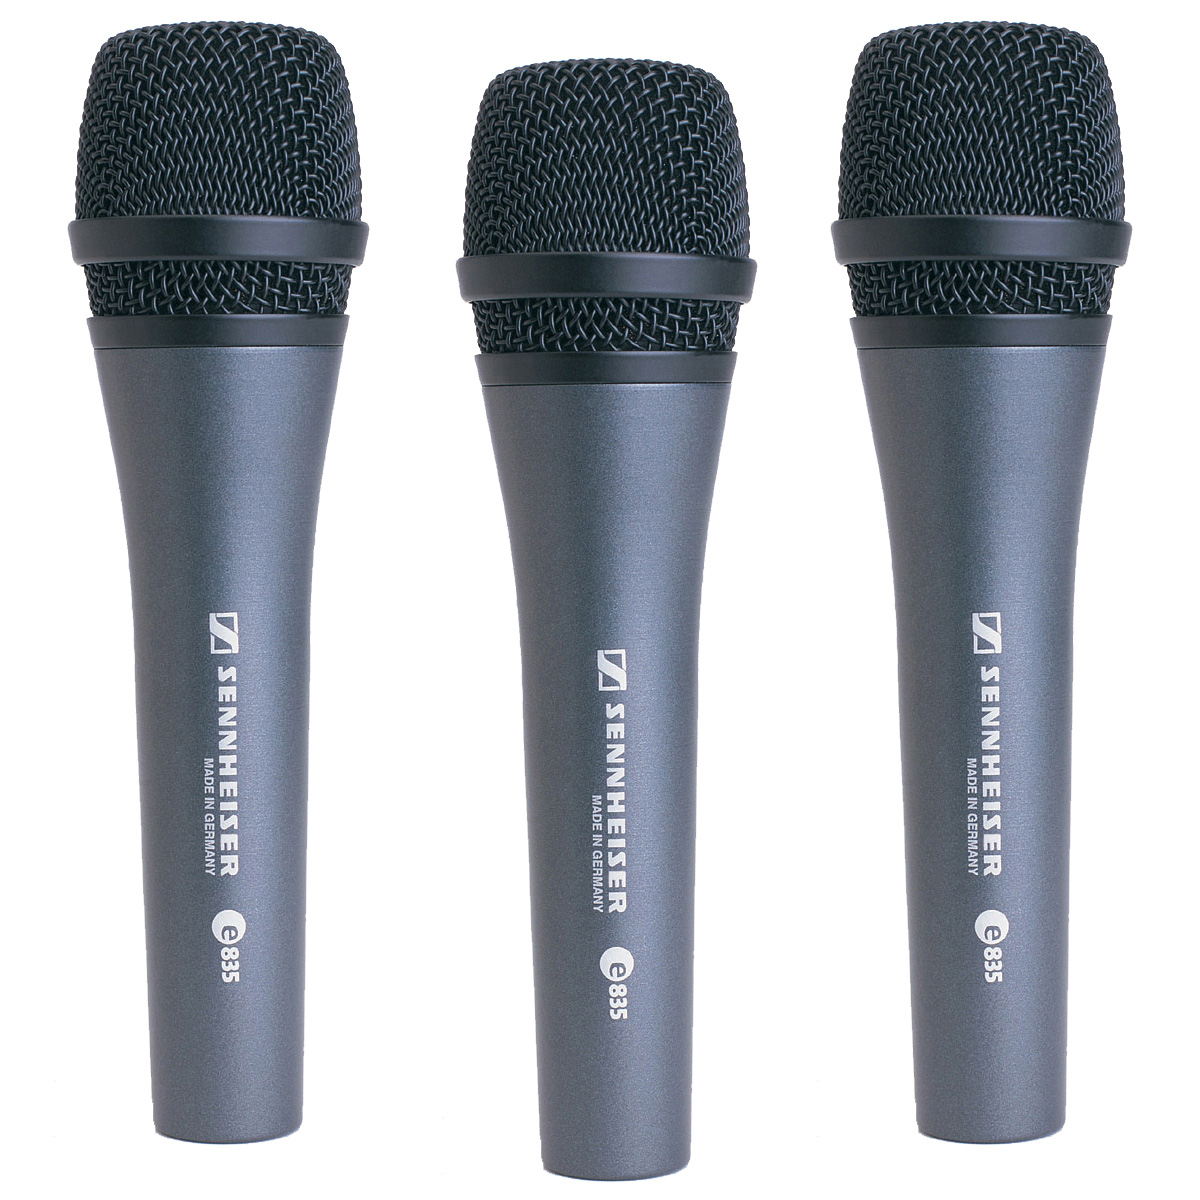 sennheiser e835 dynamic microphone 3 pack. Black Bedroom Furniture Sets. Home Design Ideas